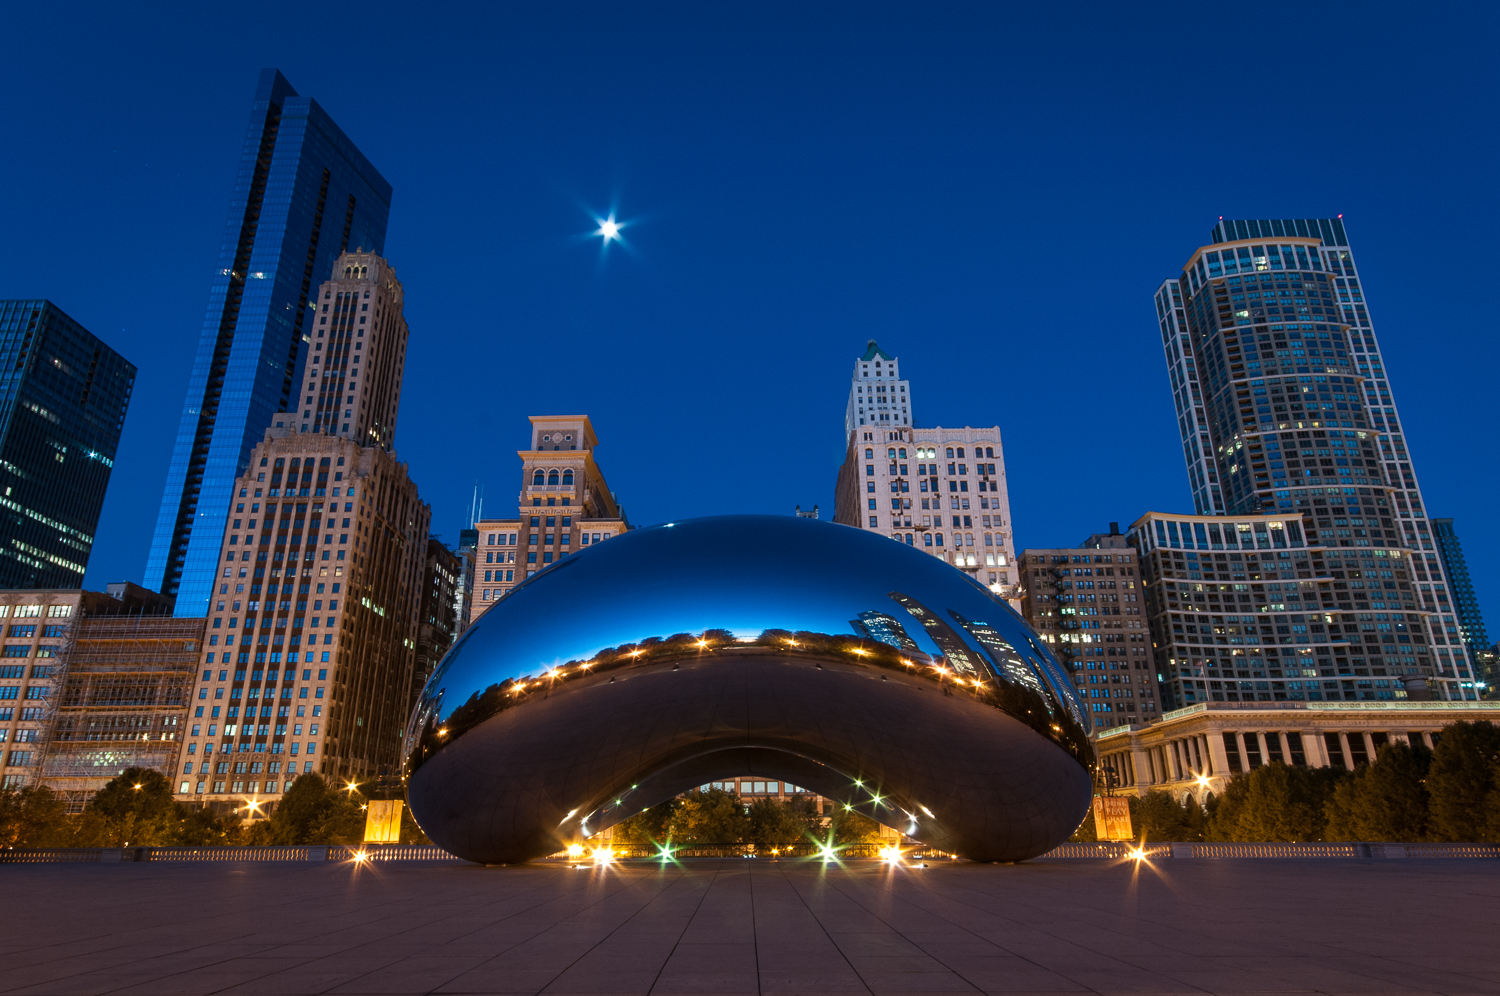 The Bean of Chicago